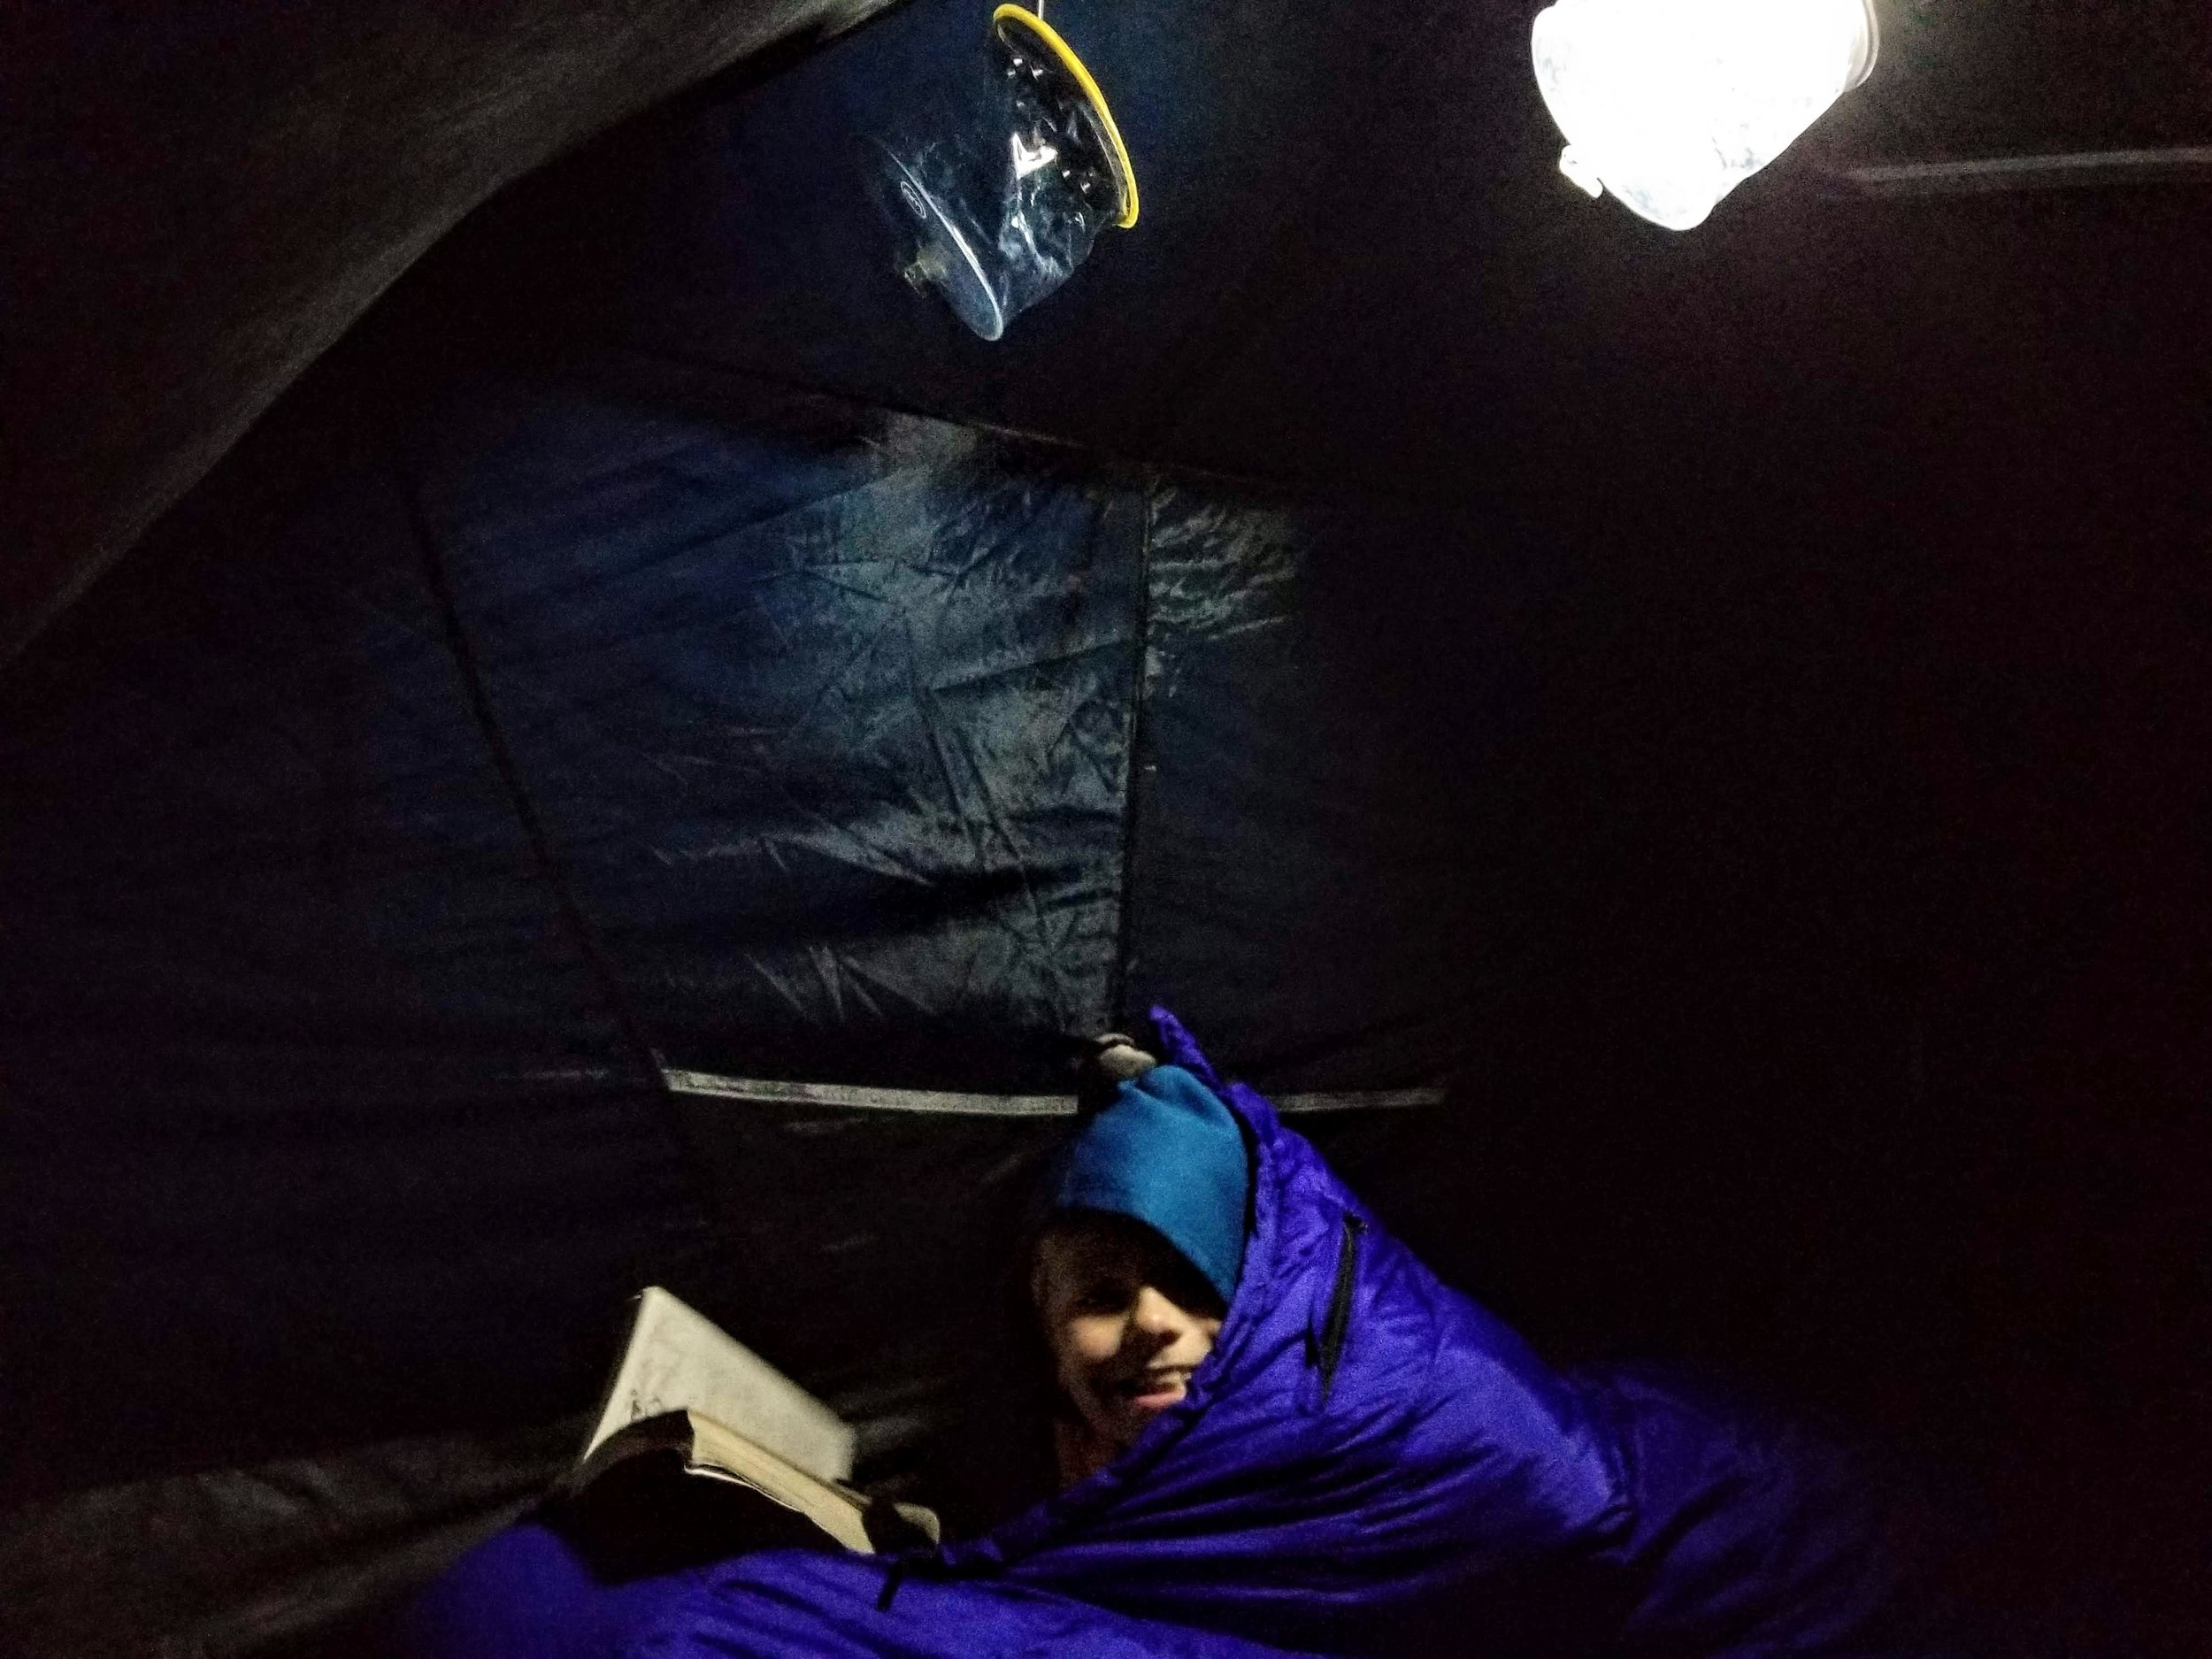 Reading by the light of a Luci light in the tent.